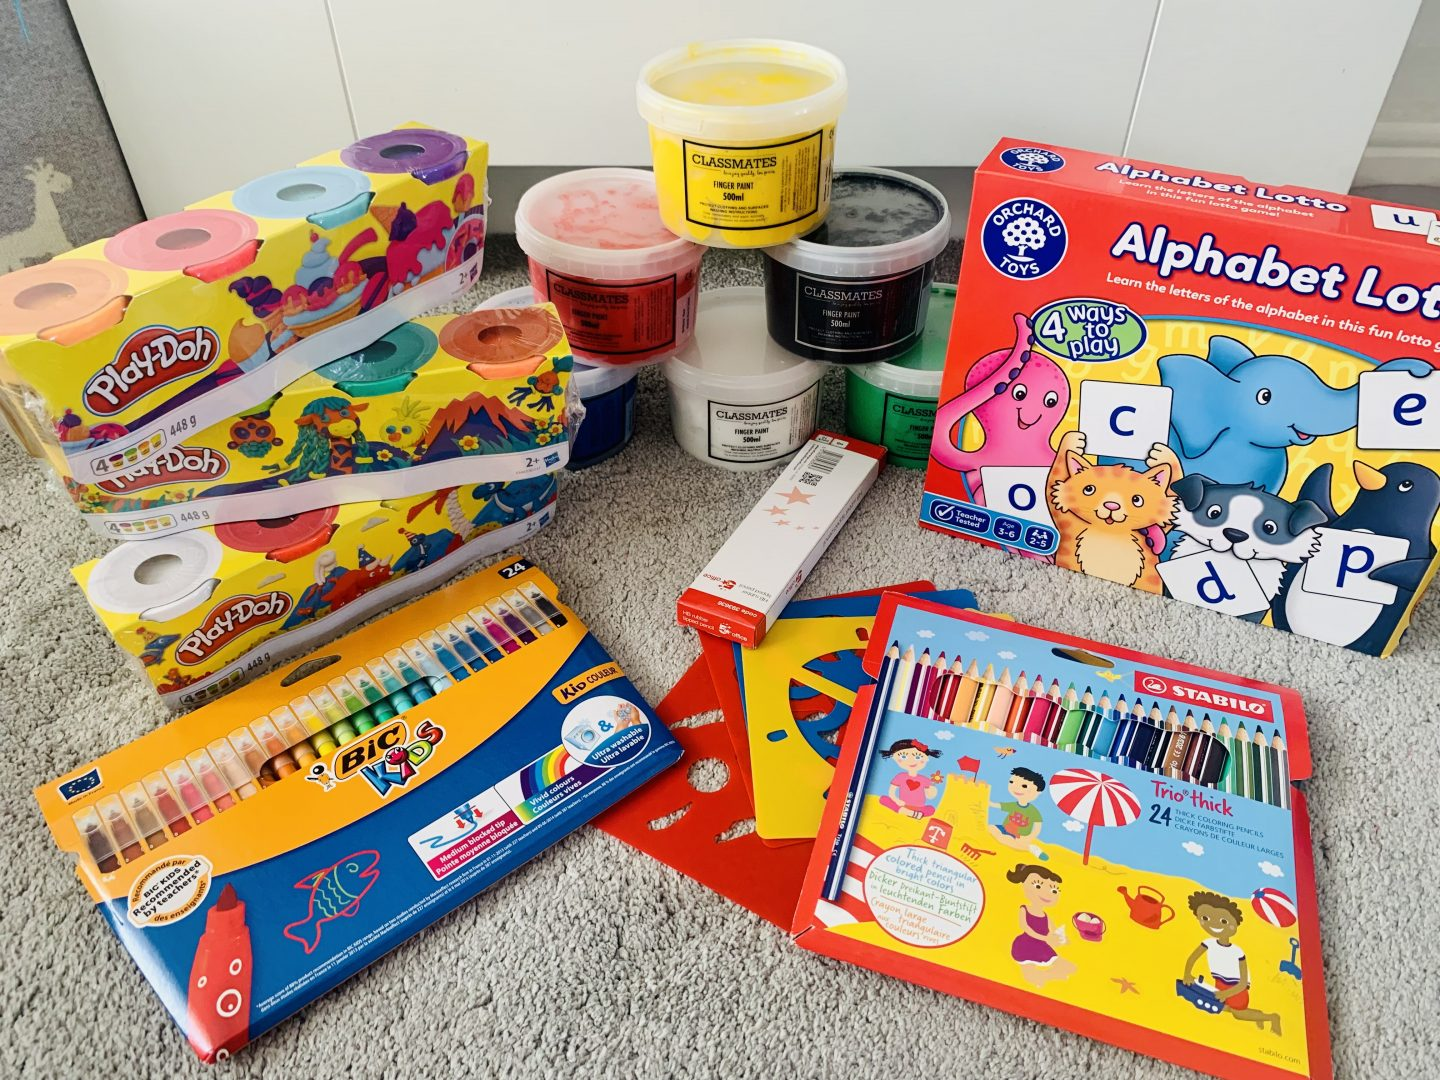 selection of items from office stationery including play dog, stationery and orchard toys